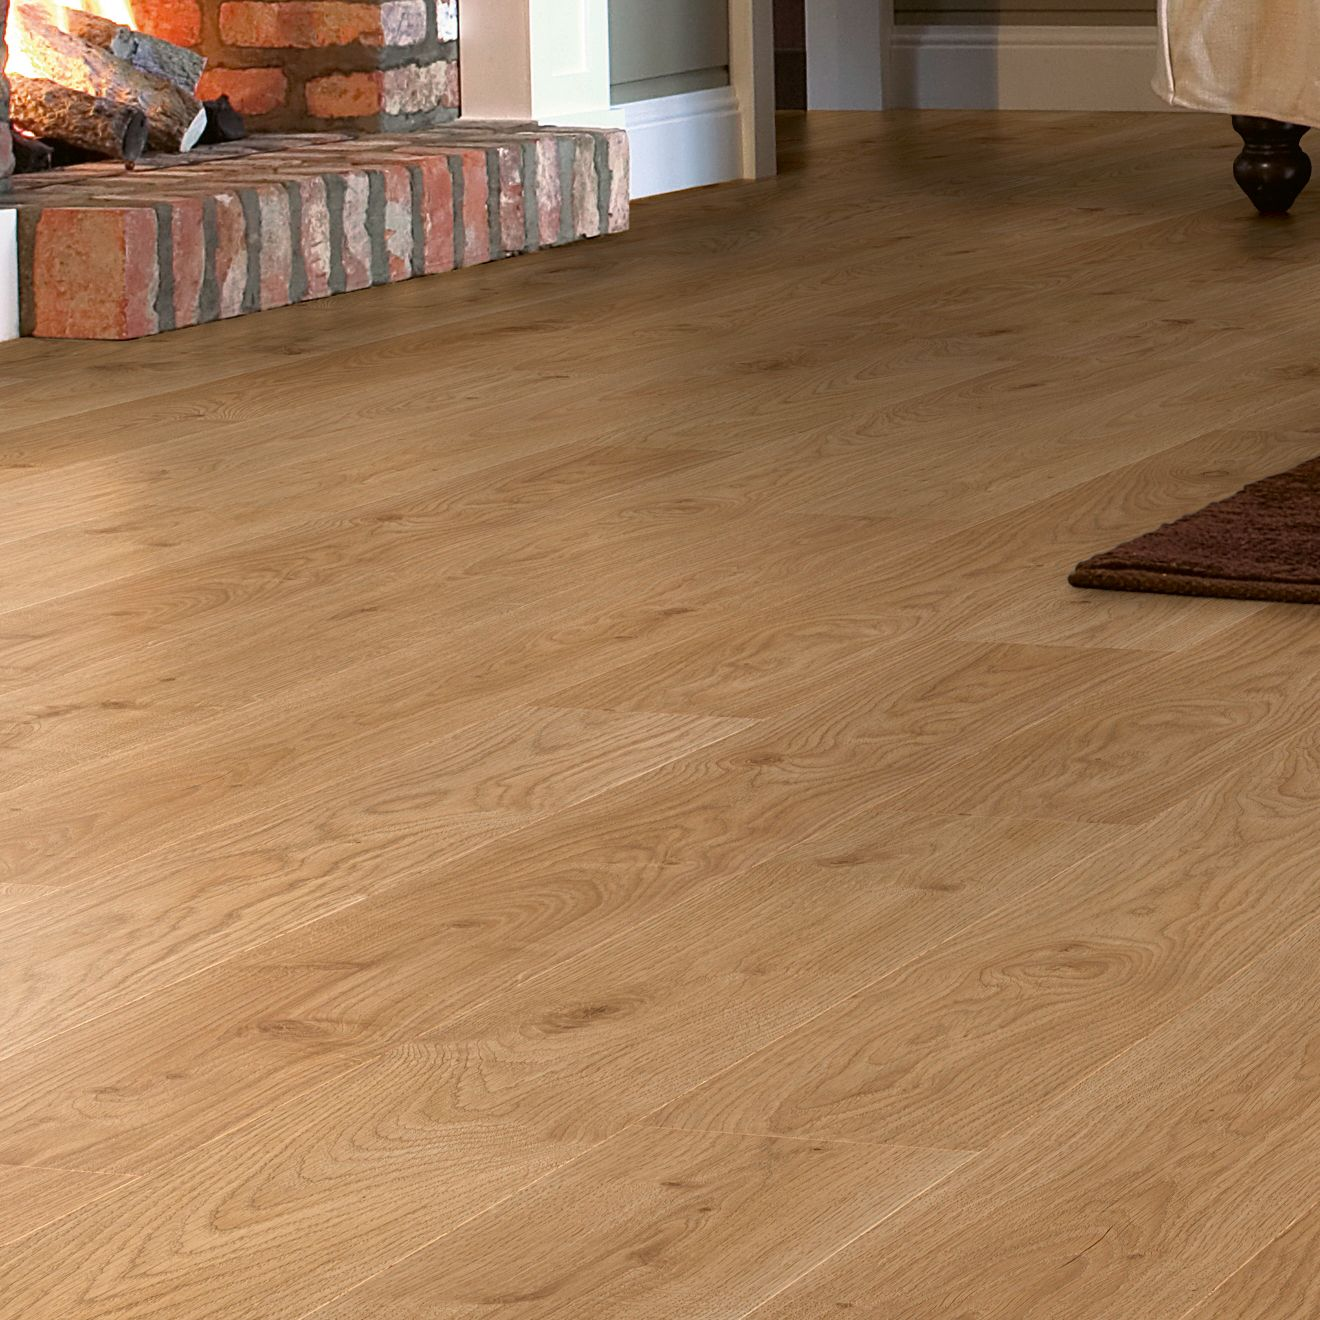 New boxed andante natural white oak effect laminate for White laminate flooring